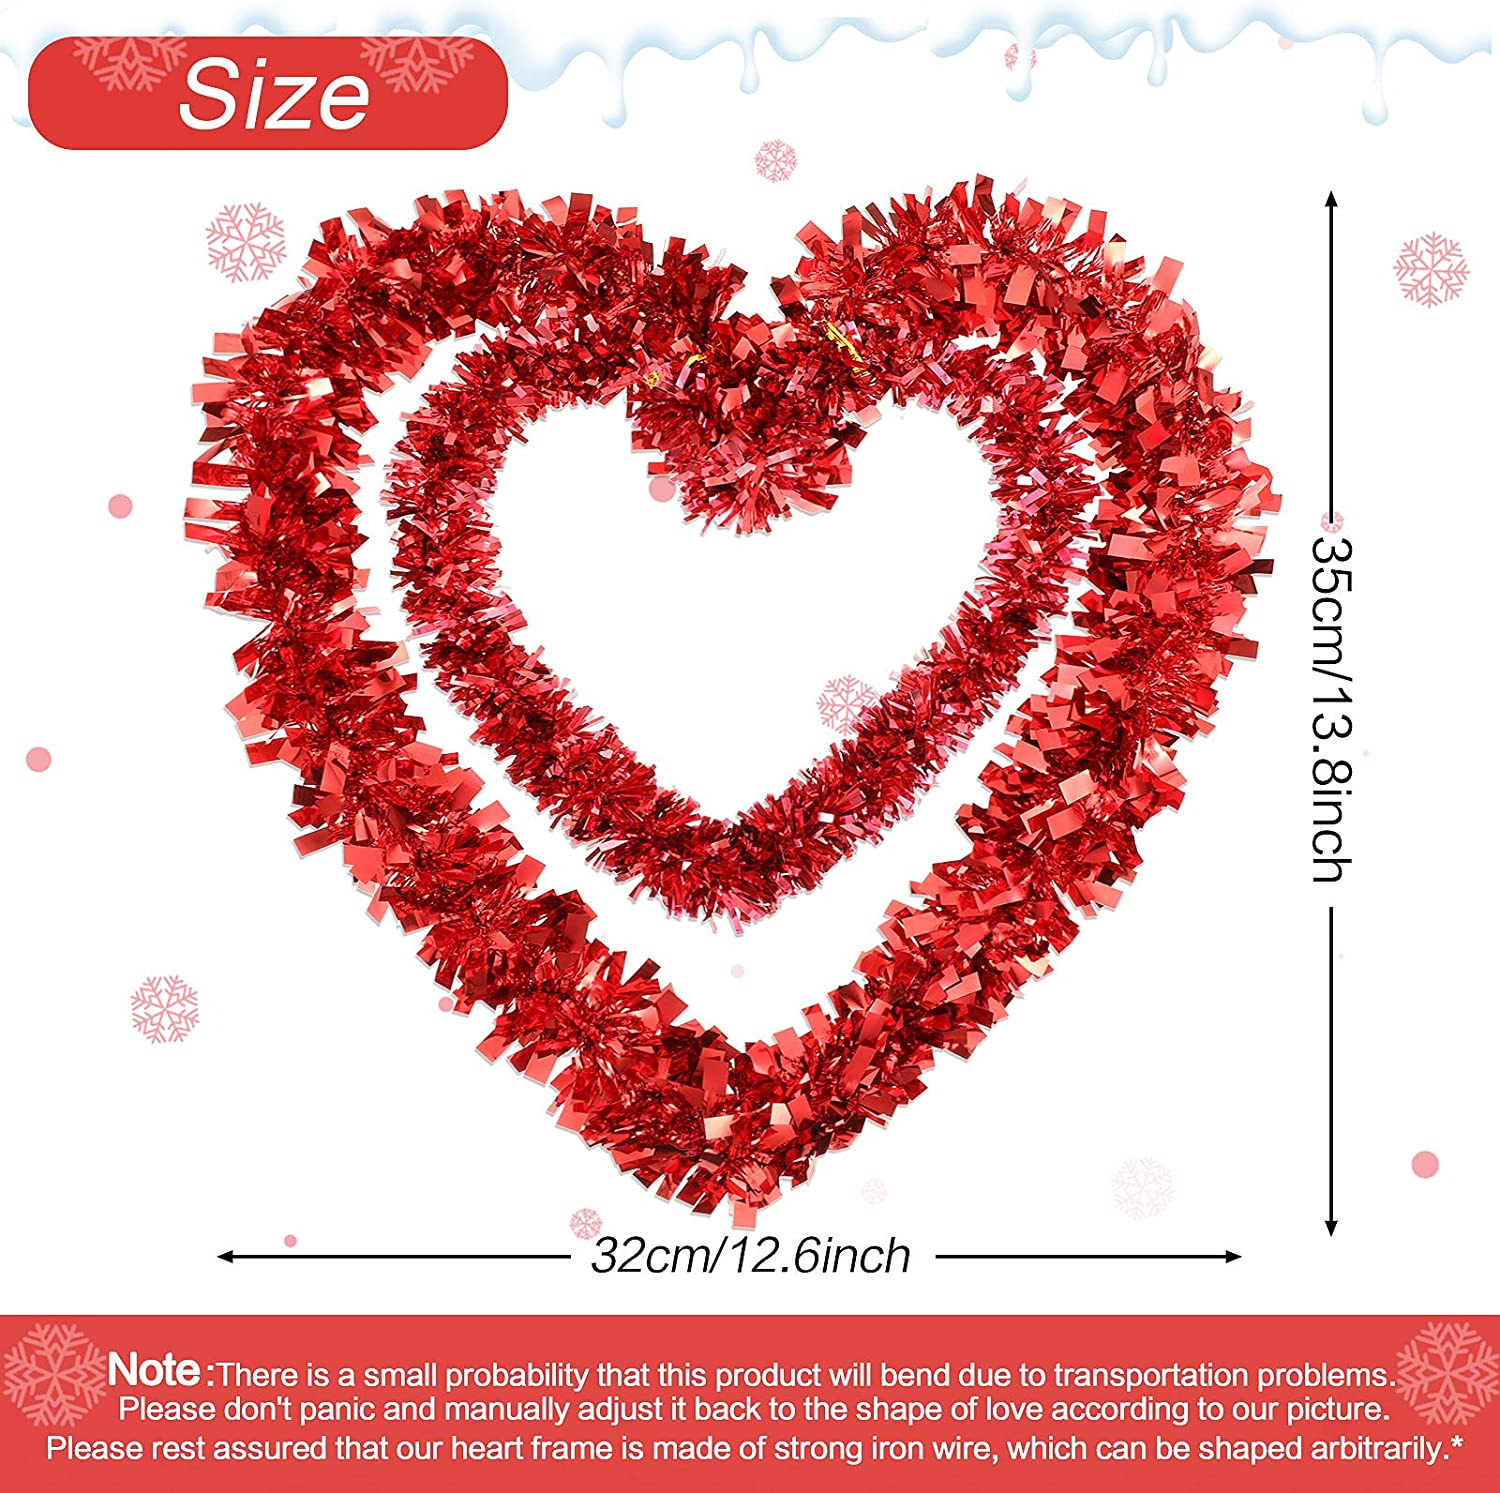 Valentine Wreath Decoration Red Tinsel Heart Wreath Artificial Heart Shaped Wreath Valentine Hanging Door Wreath for Valentines Day Wedding Engagement Party Decorations 14 Inch